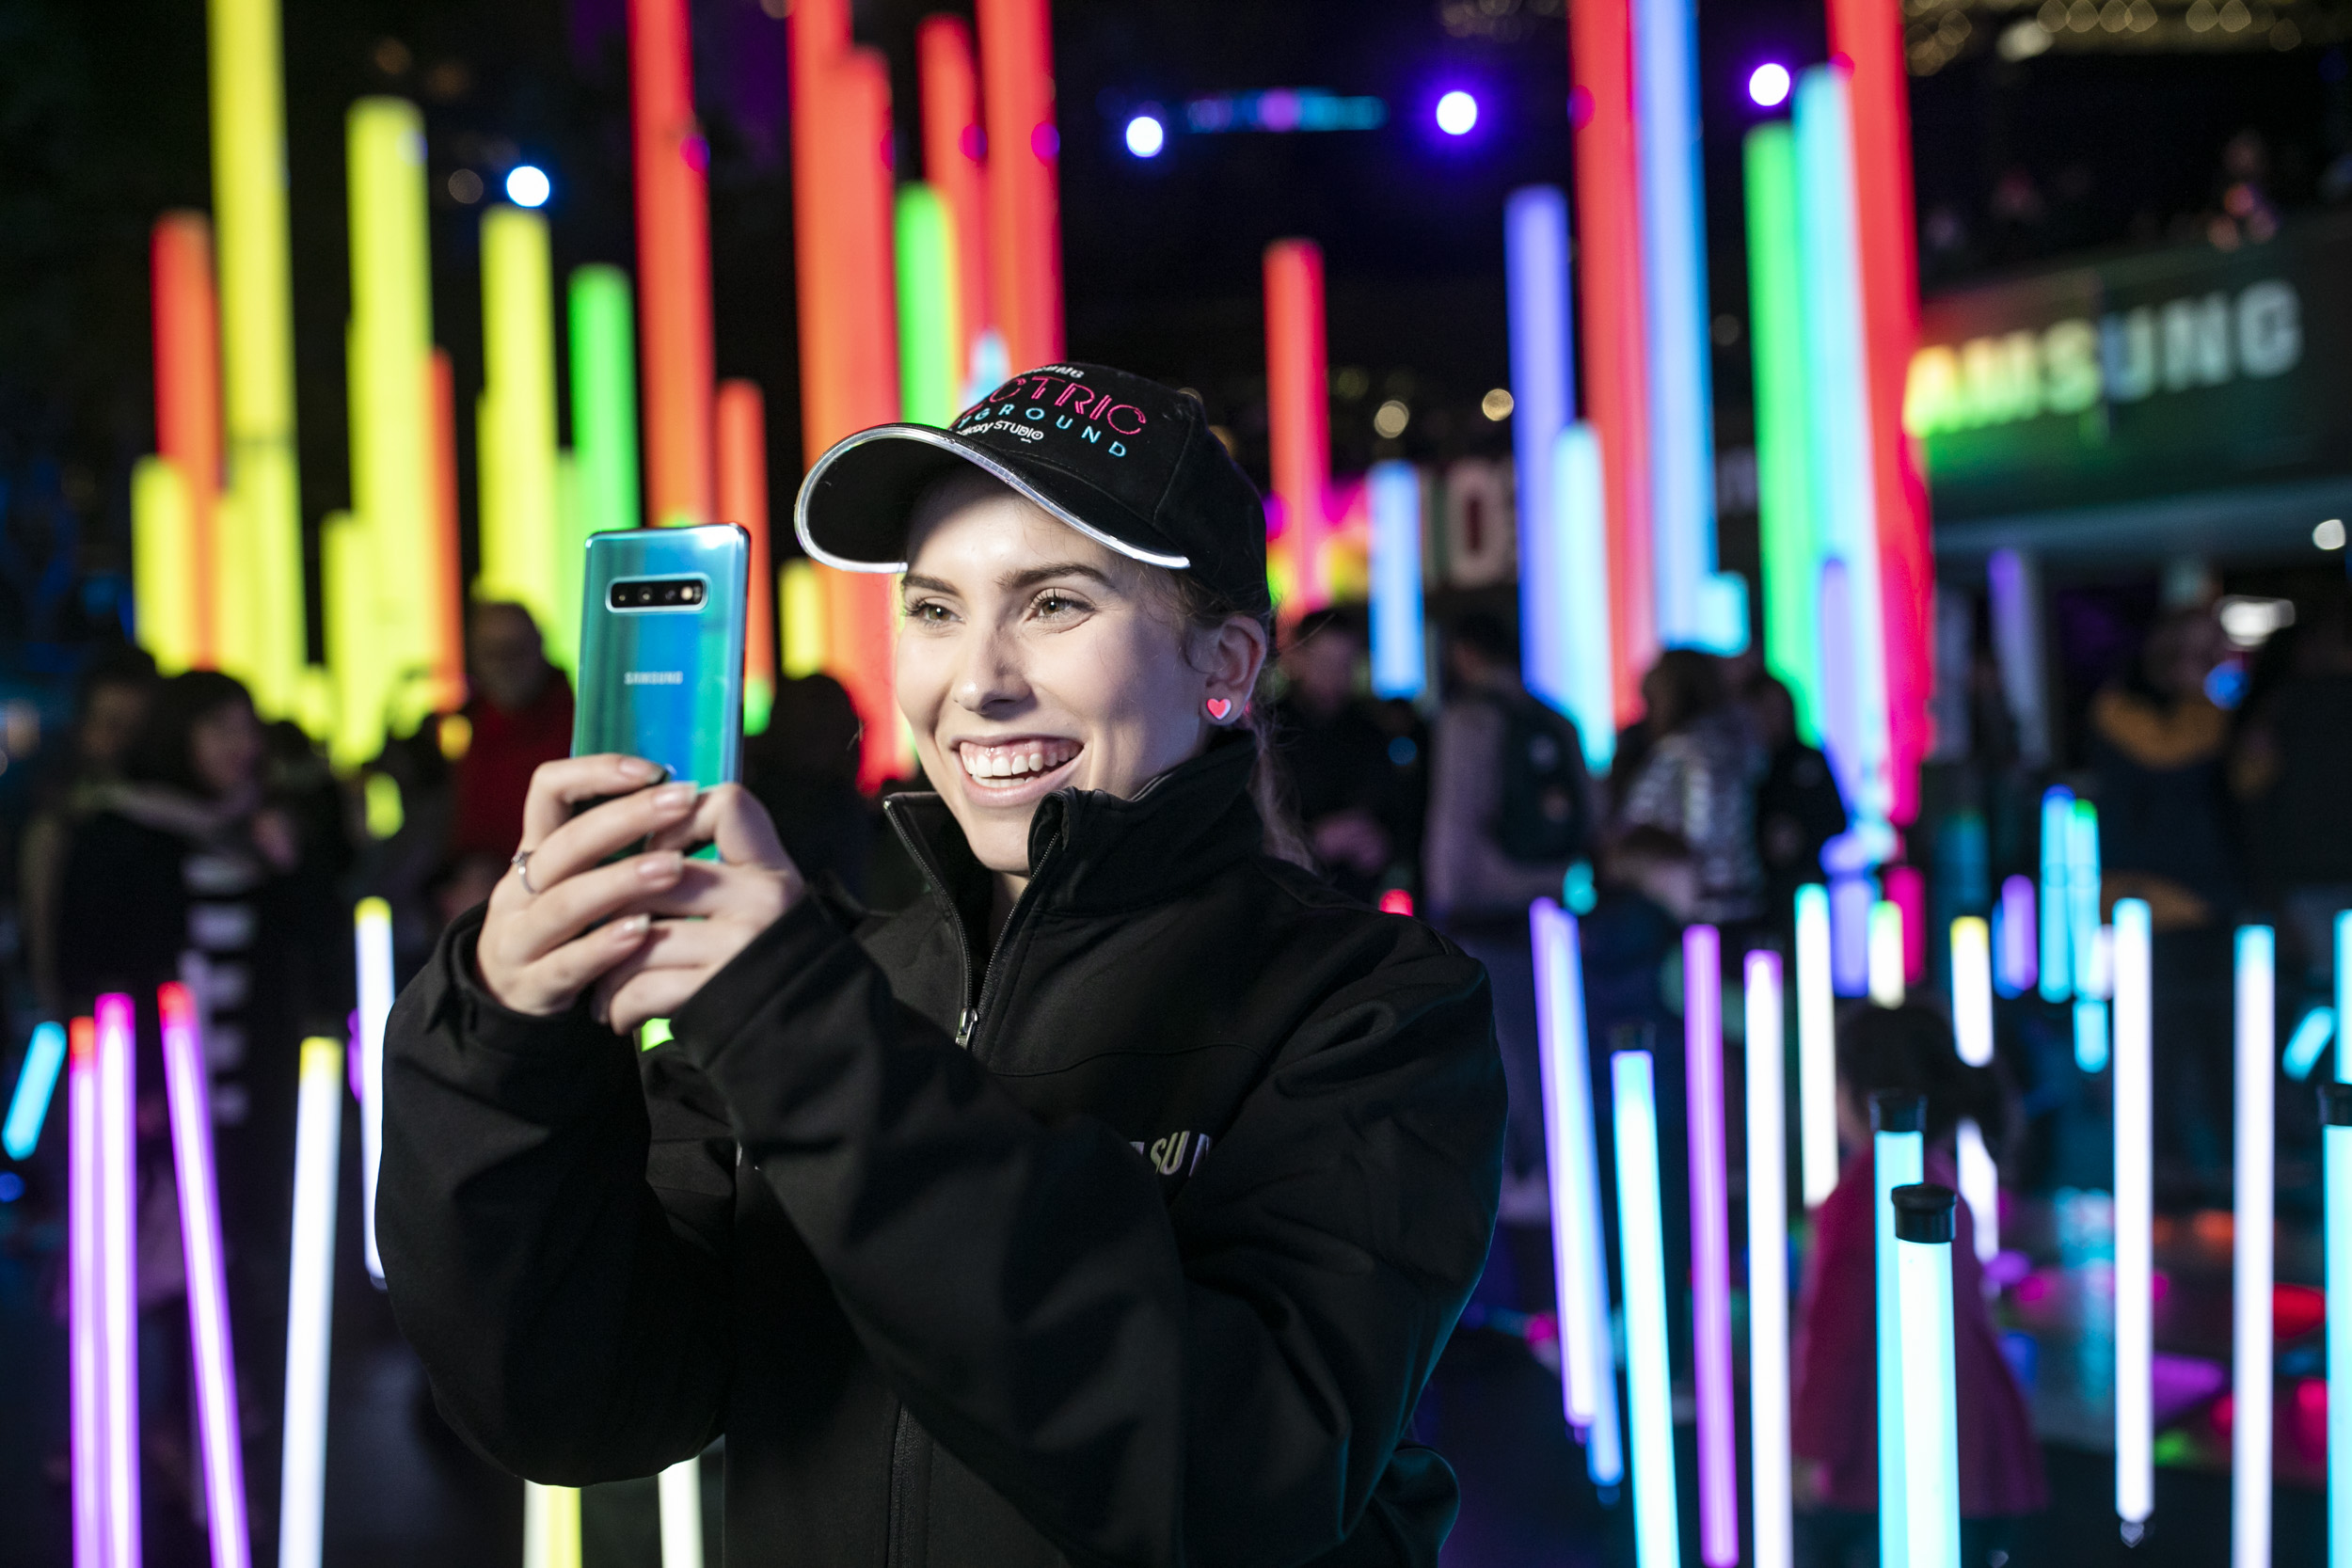 Samsung Electric Playground at Vivid Festival - Shot for Samsung